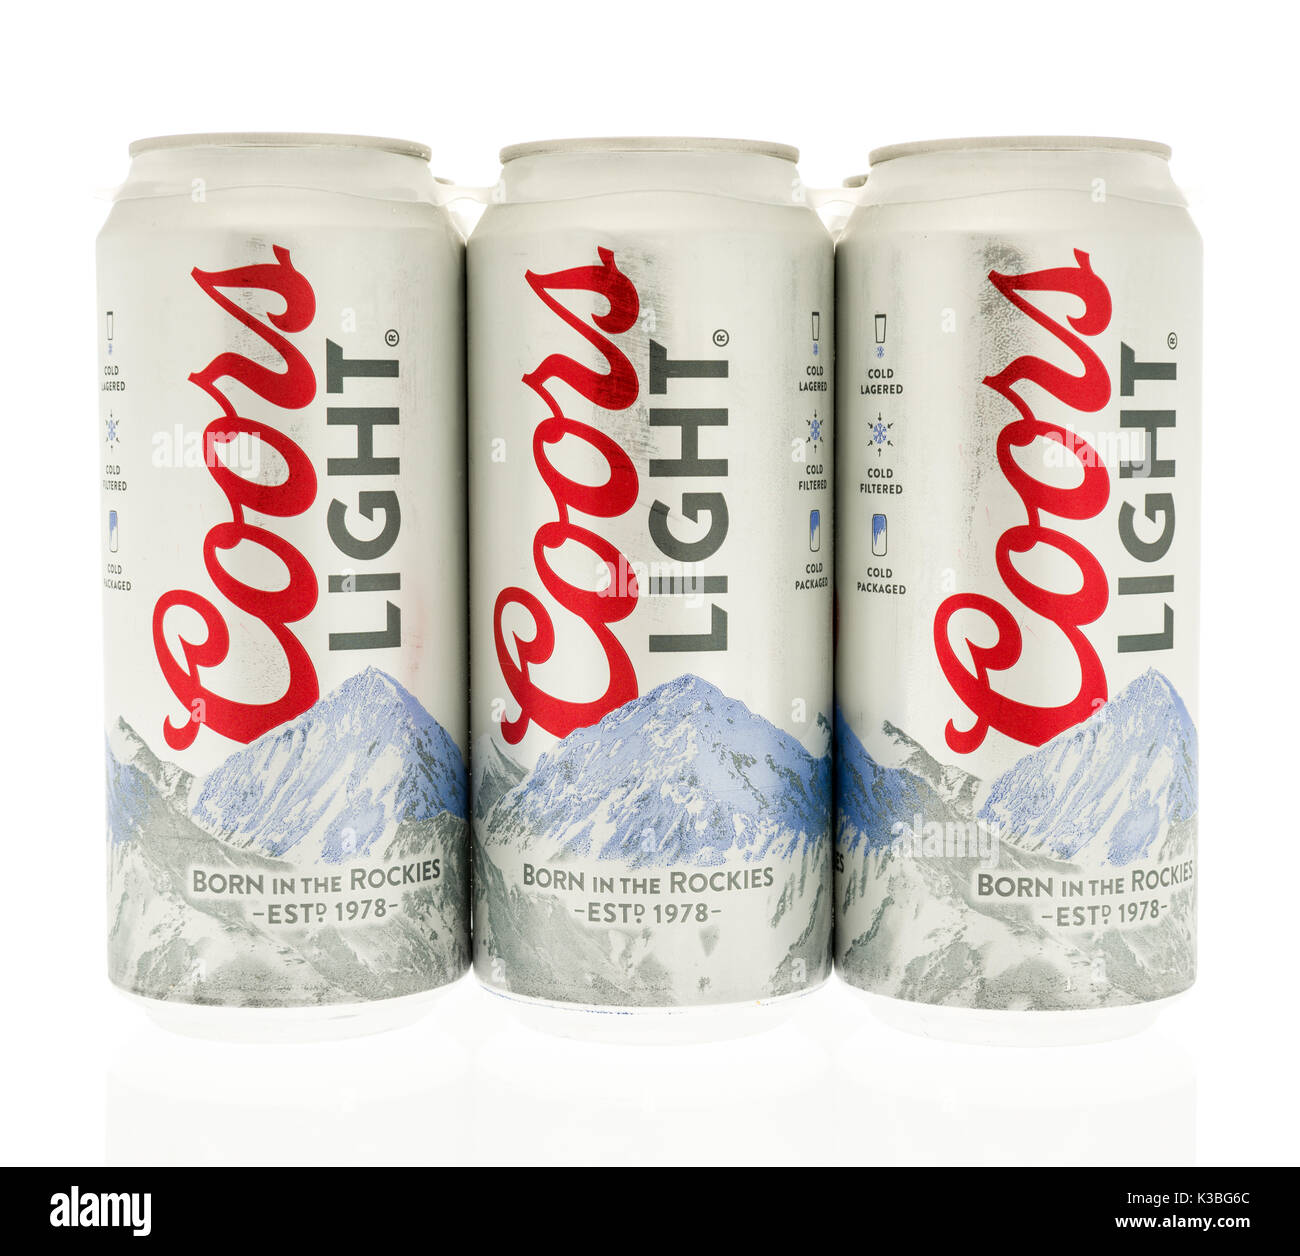 Adolph Coors Iii Stock Photos And Pictures: Coors Beer Stock Photos & Coors Beer Stock Images